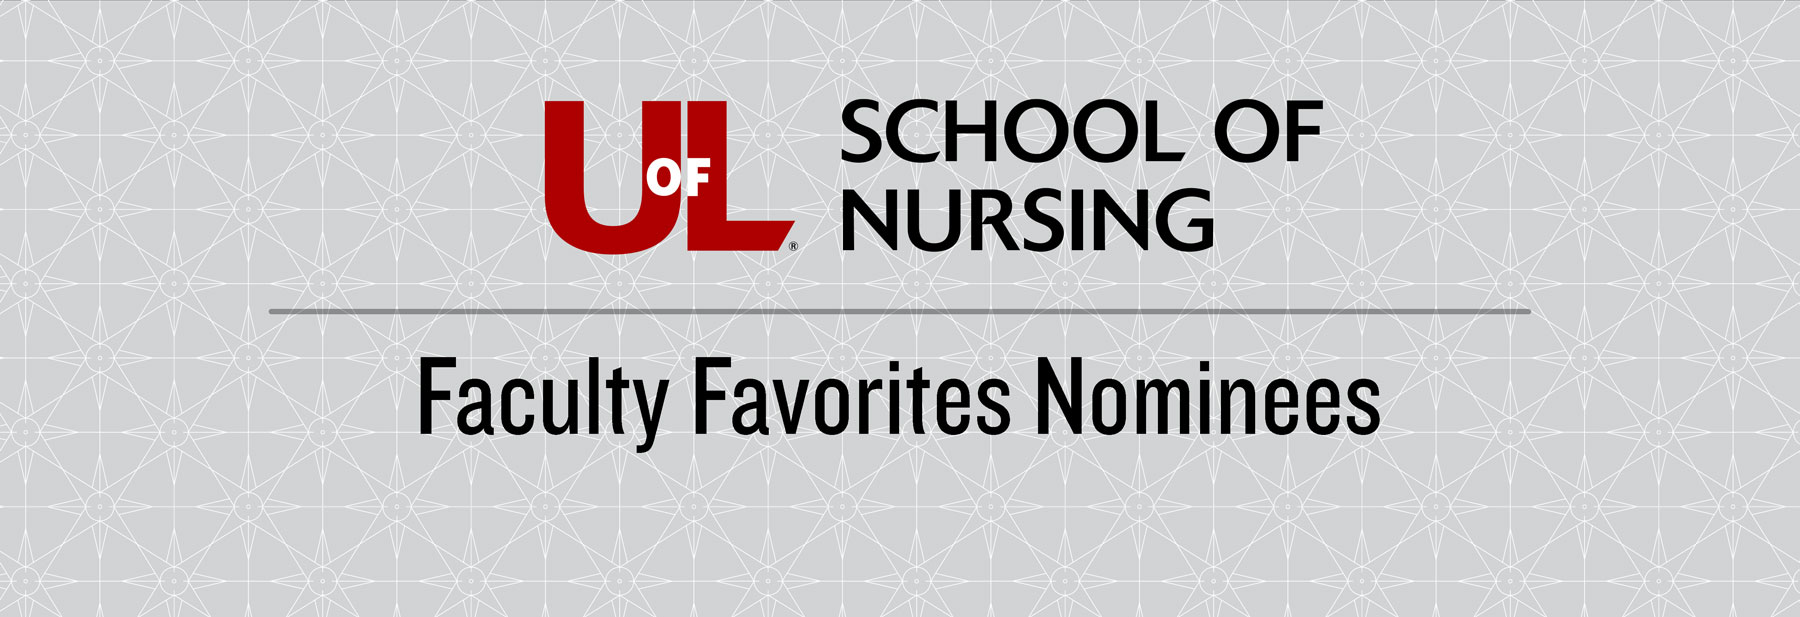 School of Nursing Faculty Favorites Nominees